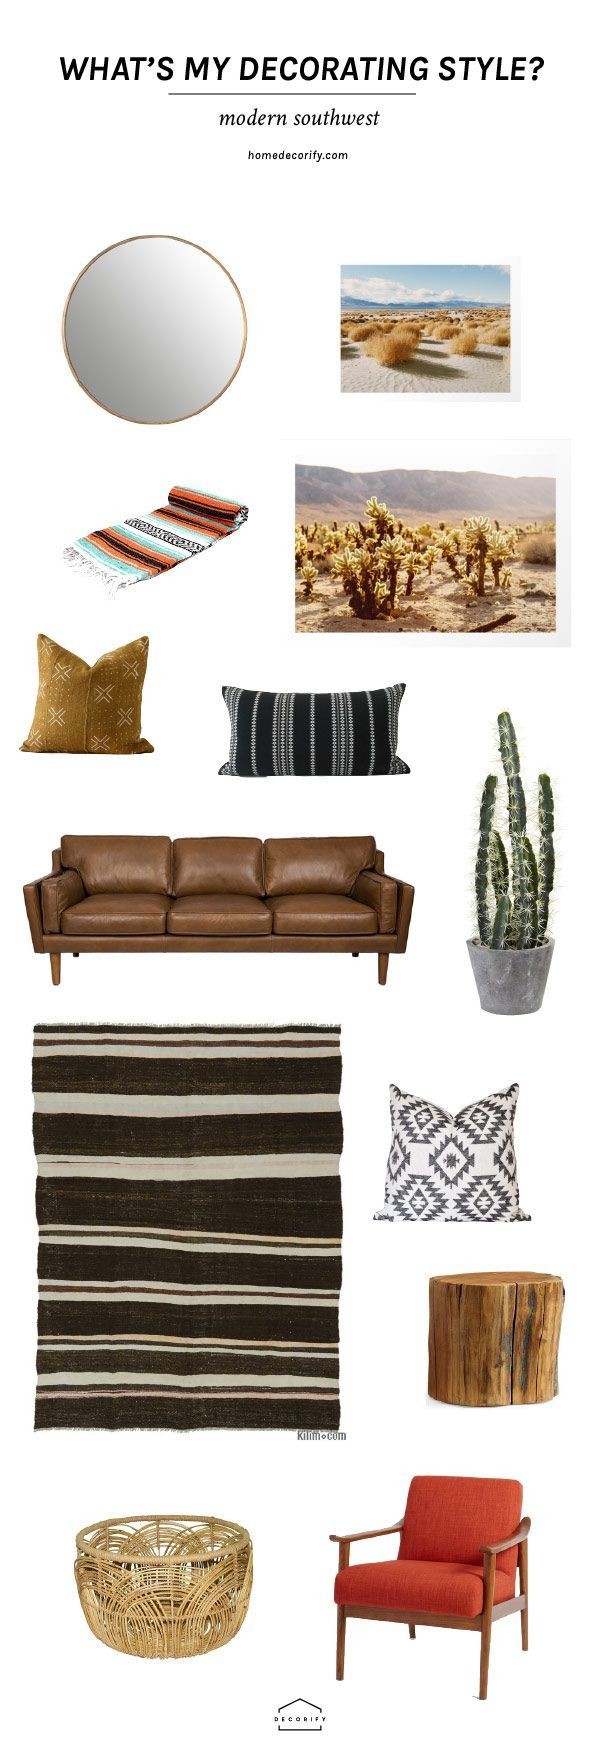 Modern southwest decor global home decor boho home for Southwestern home decor